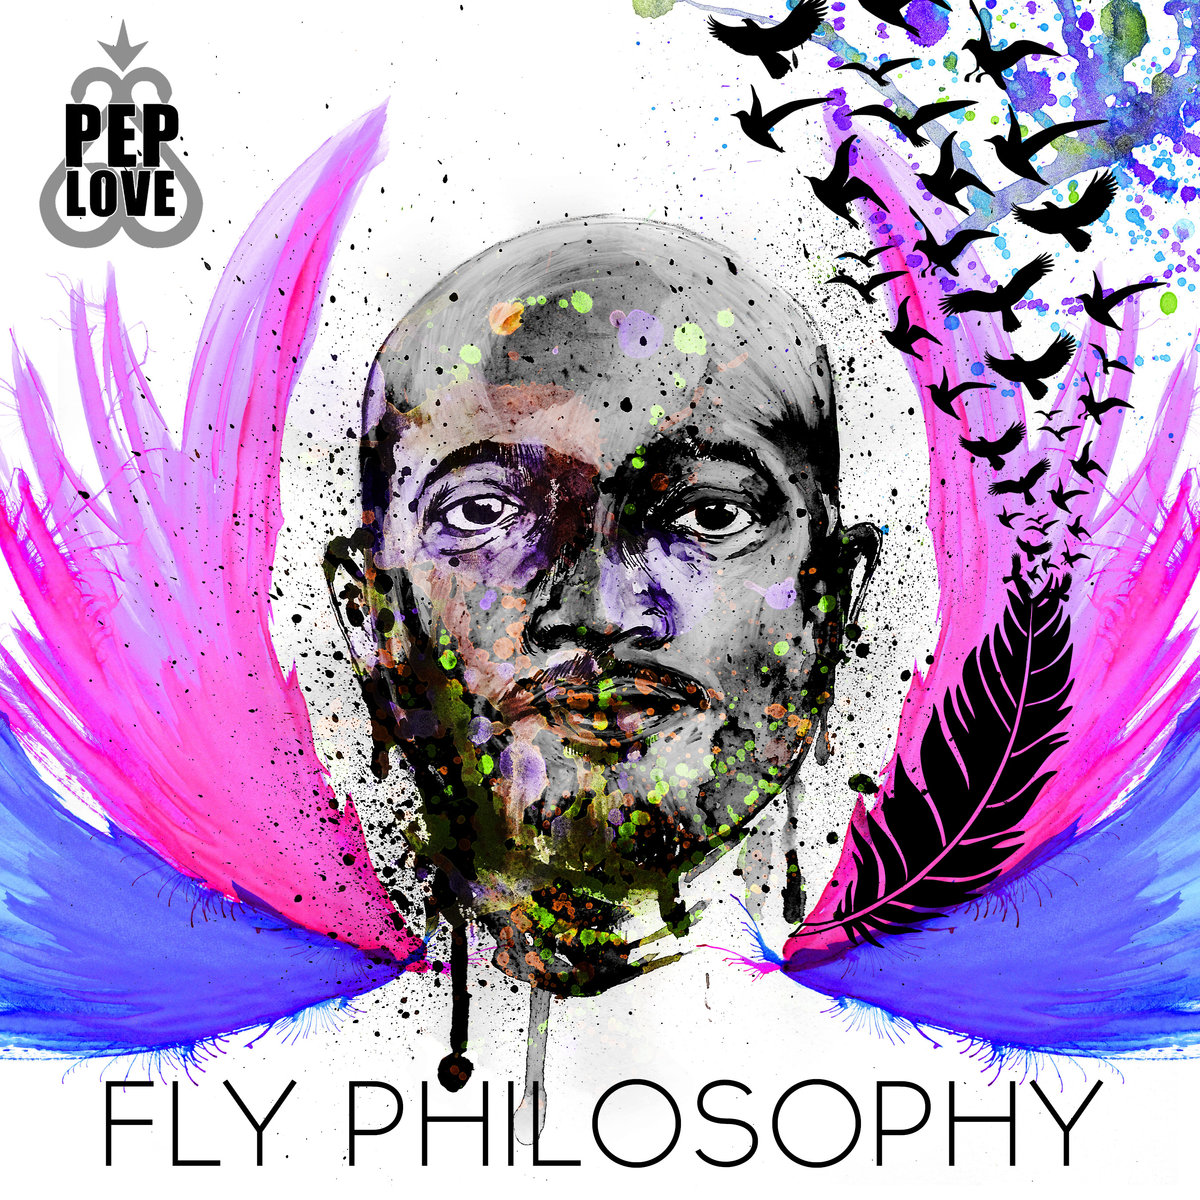 Pep_love_presenta__fly_philosophy_